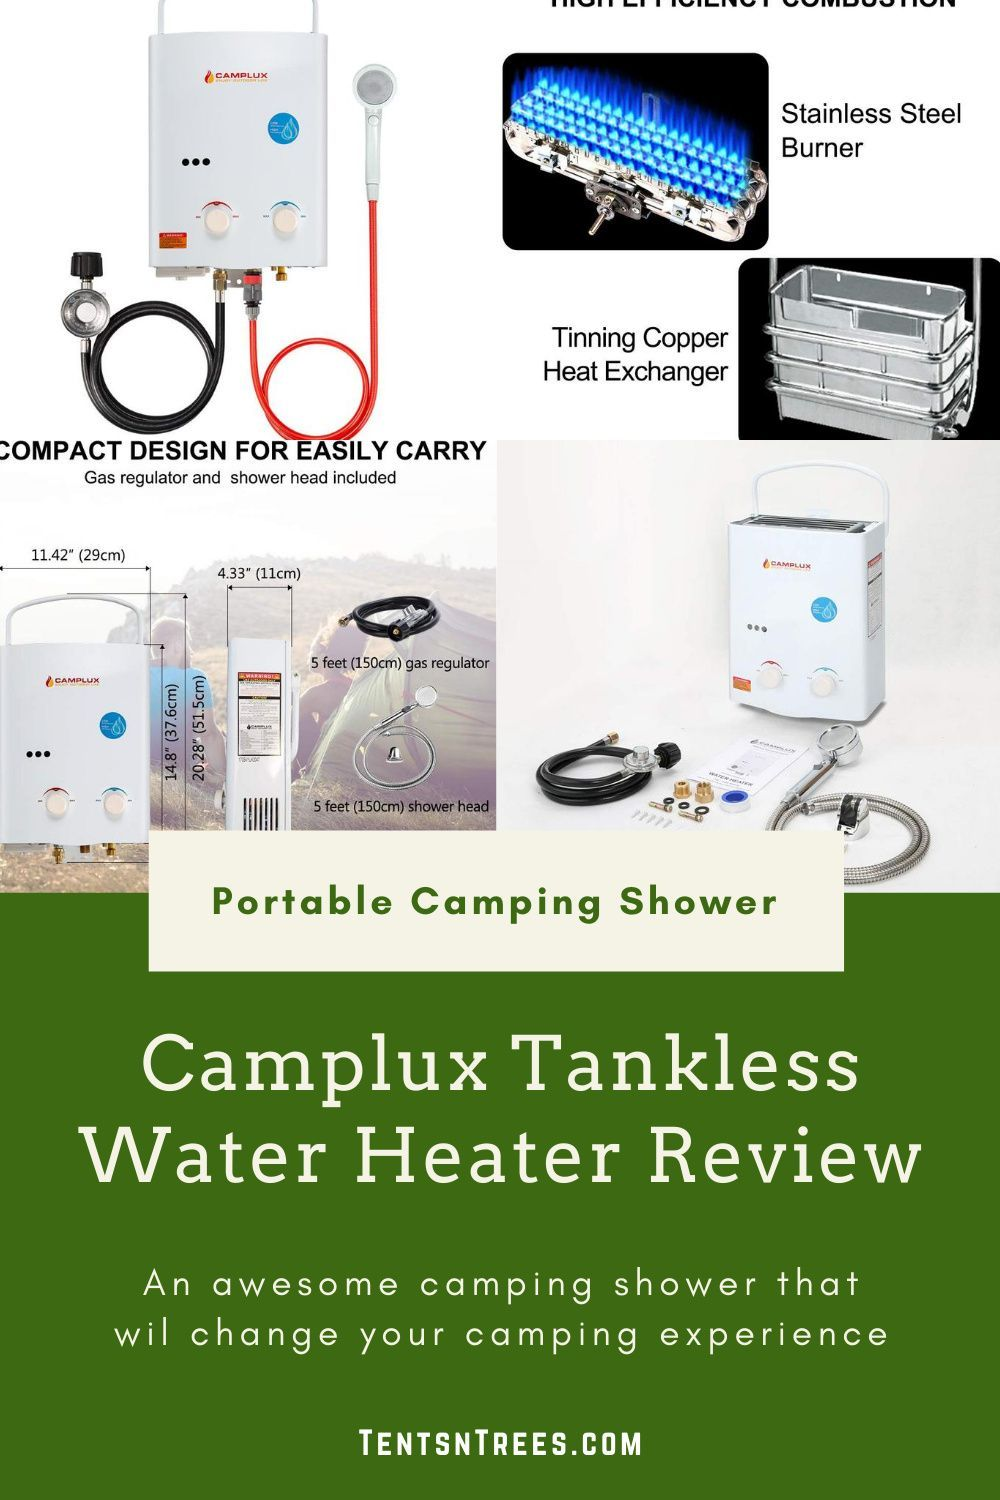 Camplux Tankless Water Heater Review Camping Shower In 2020 Tankless Water Heater Water Heater Camping Shower